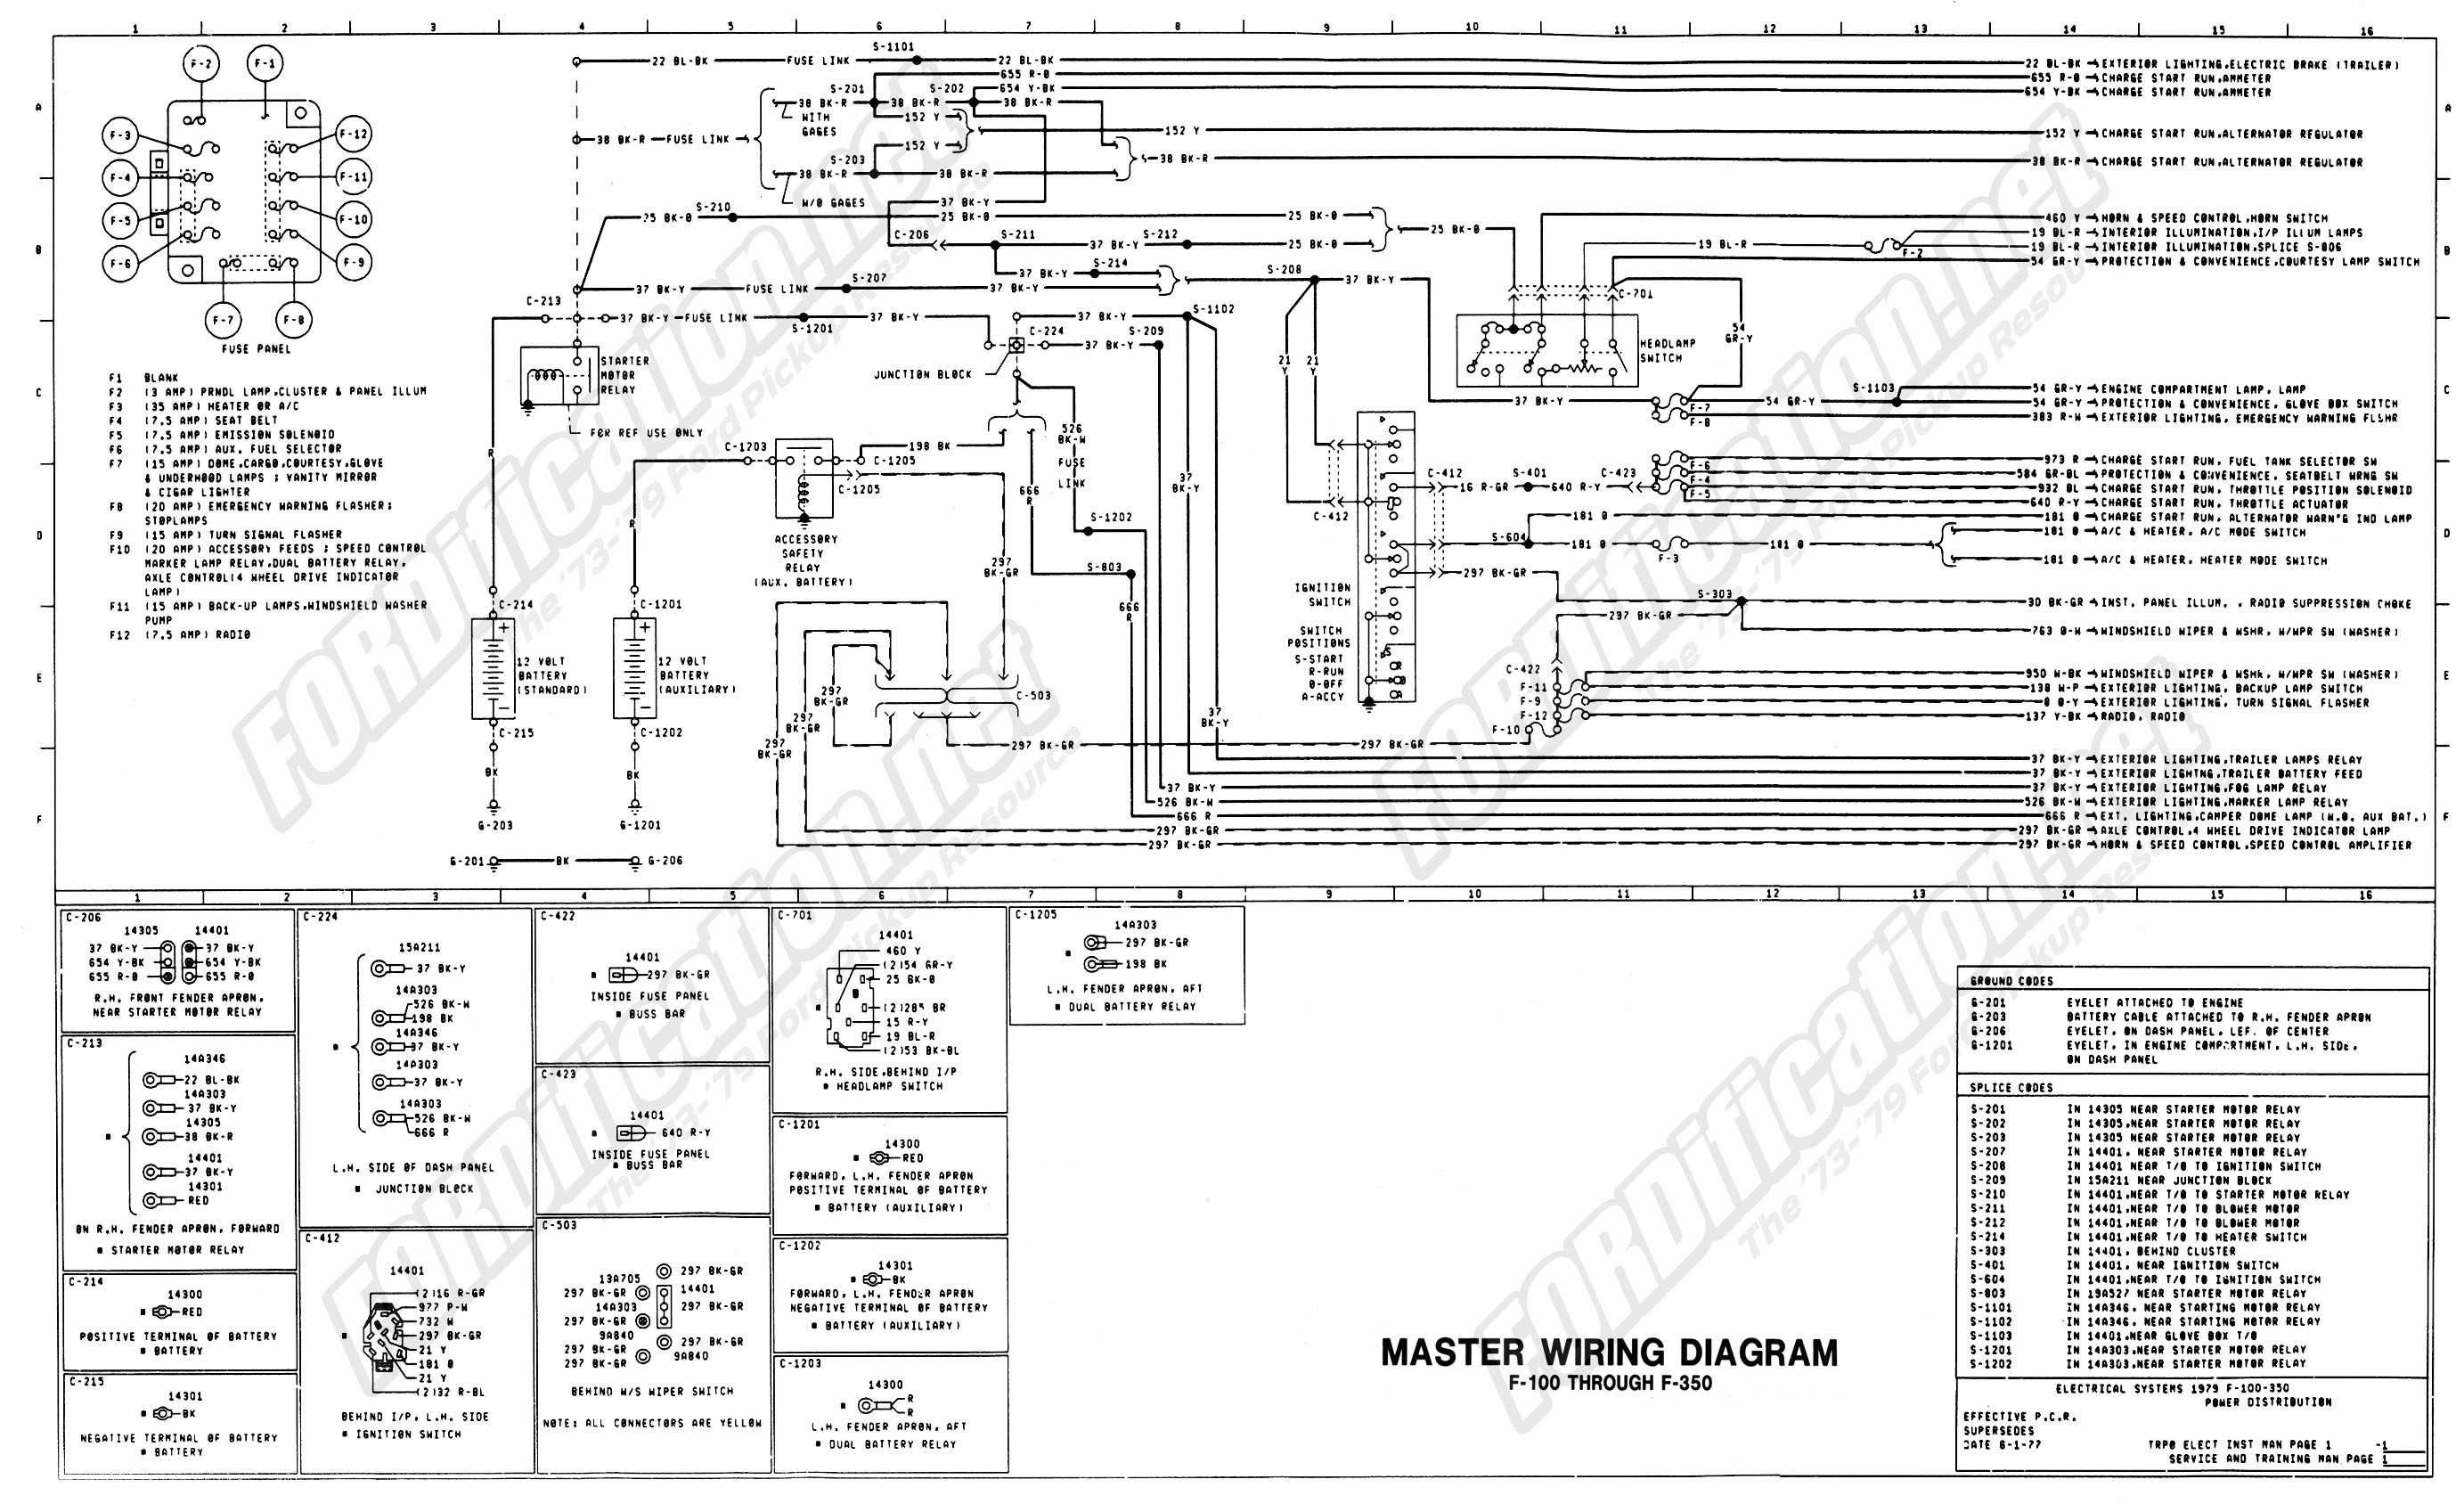 2002 ford F150 Engine Diagram 79 F150 solenoid Wiring Diagram ford Truck  Enthusiasts forums Of 2002